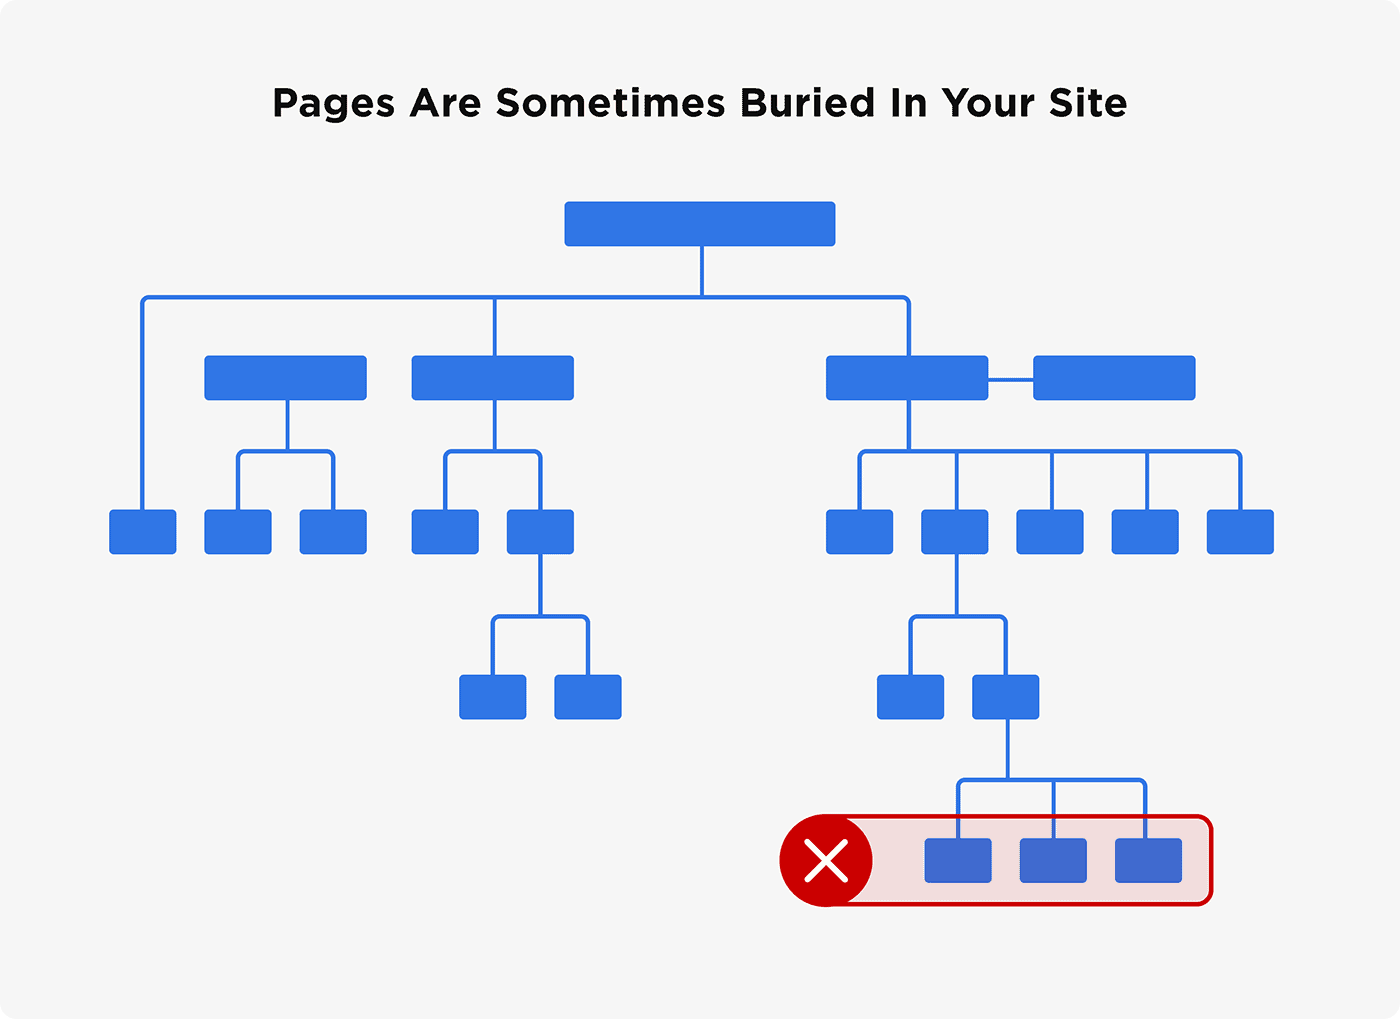 Pages are sometimes buried in your site